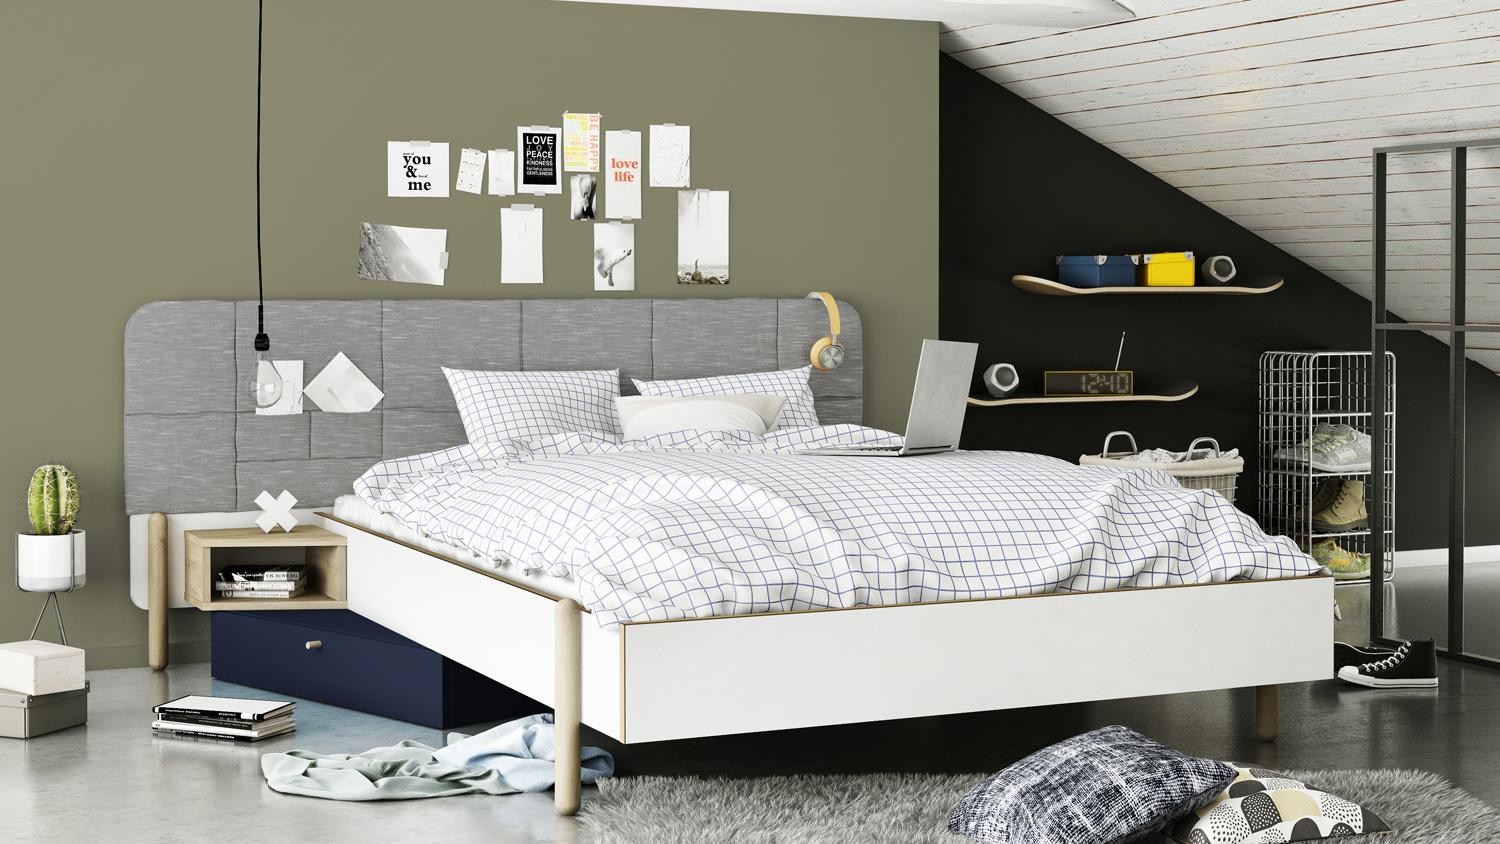 bett swag futonbett bettgestell doppelbett wei stoff grau. Black Bedroom Furniture Sets. Home Design Ideas